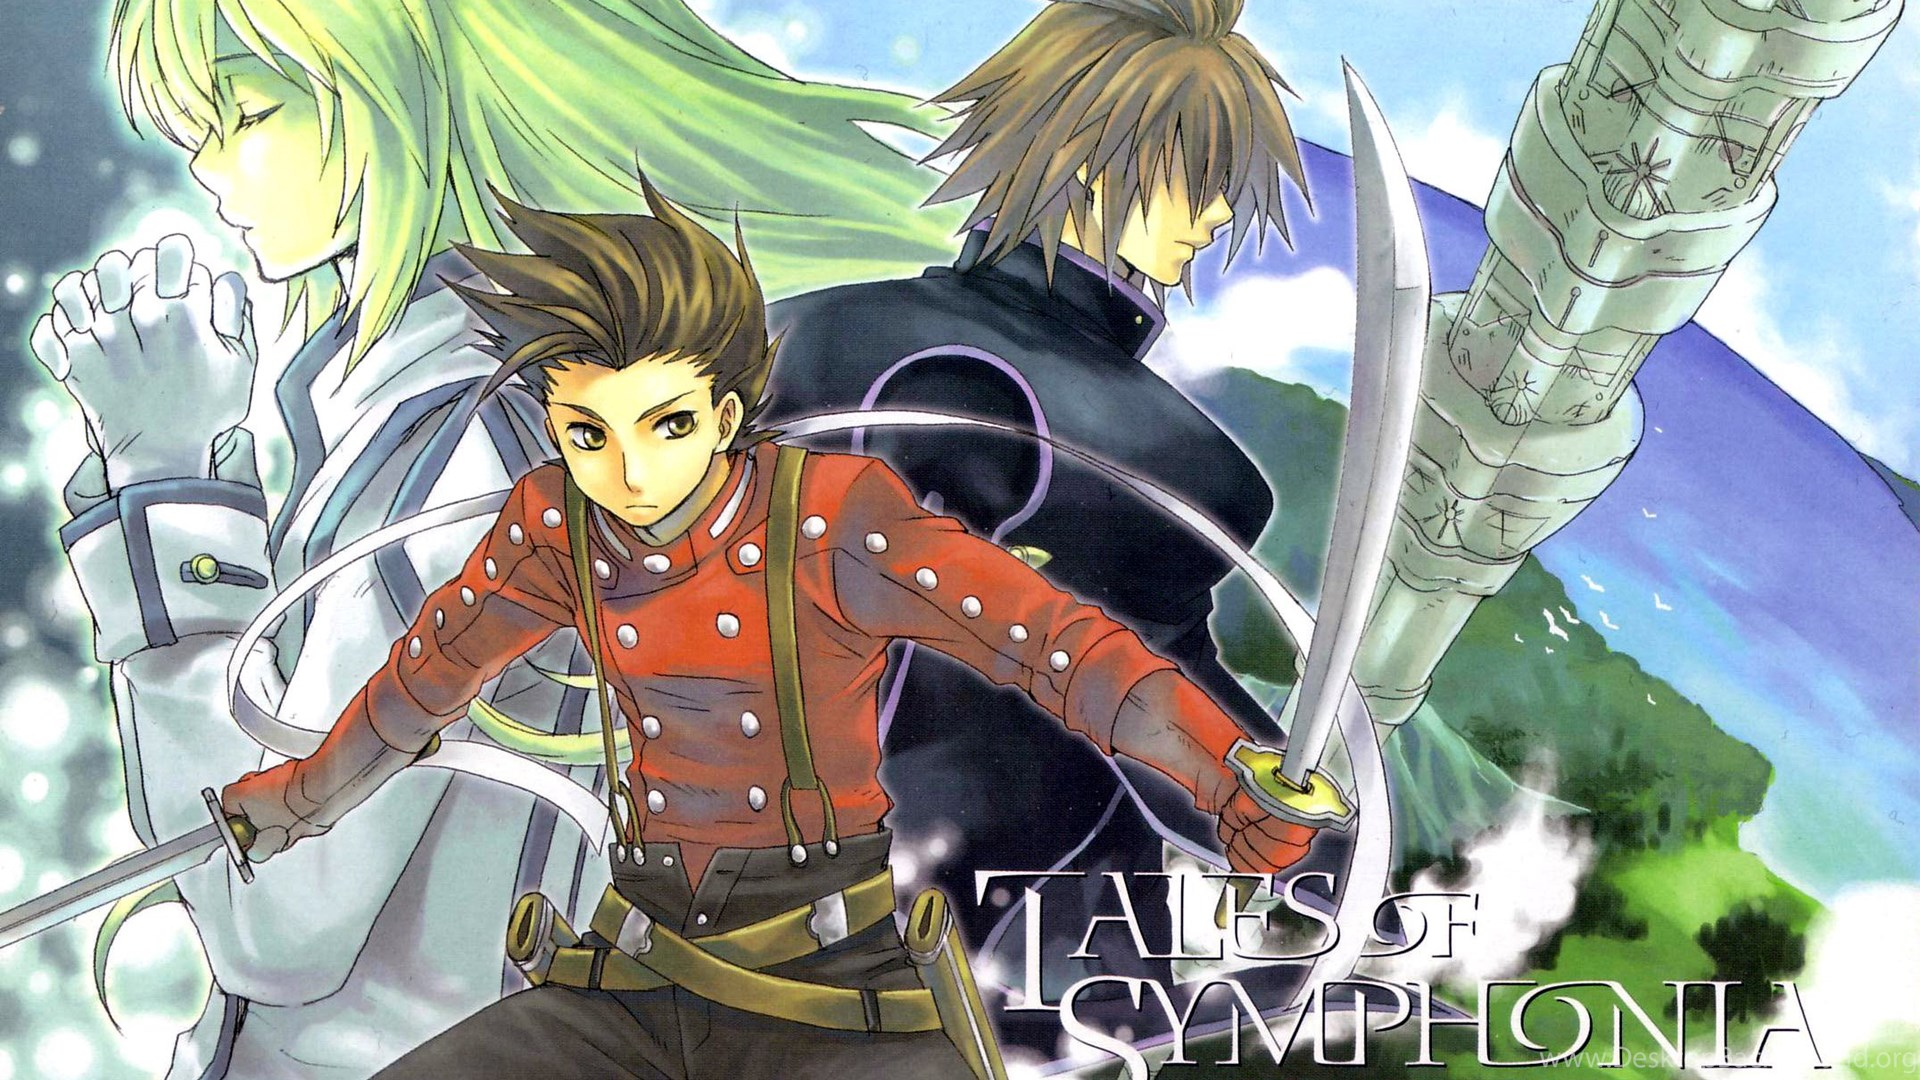 12 Tales Of Symphonia Hd Wallpapers Desktop Background